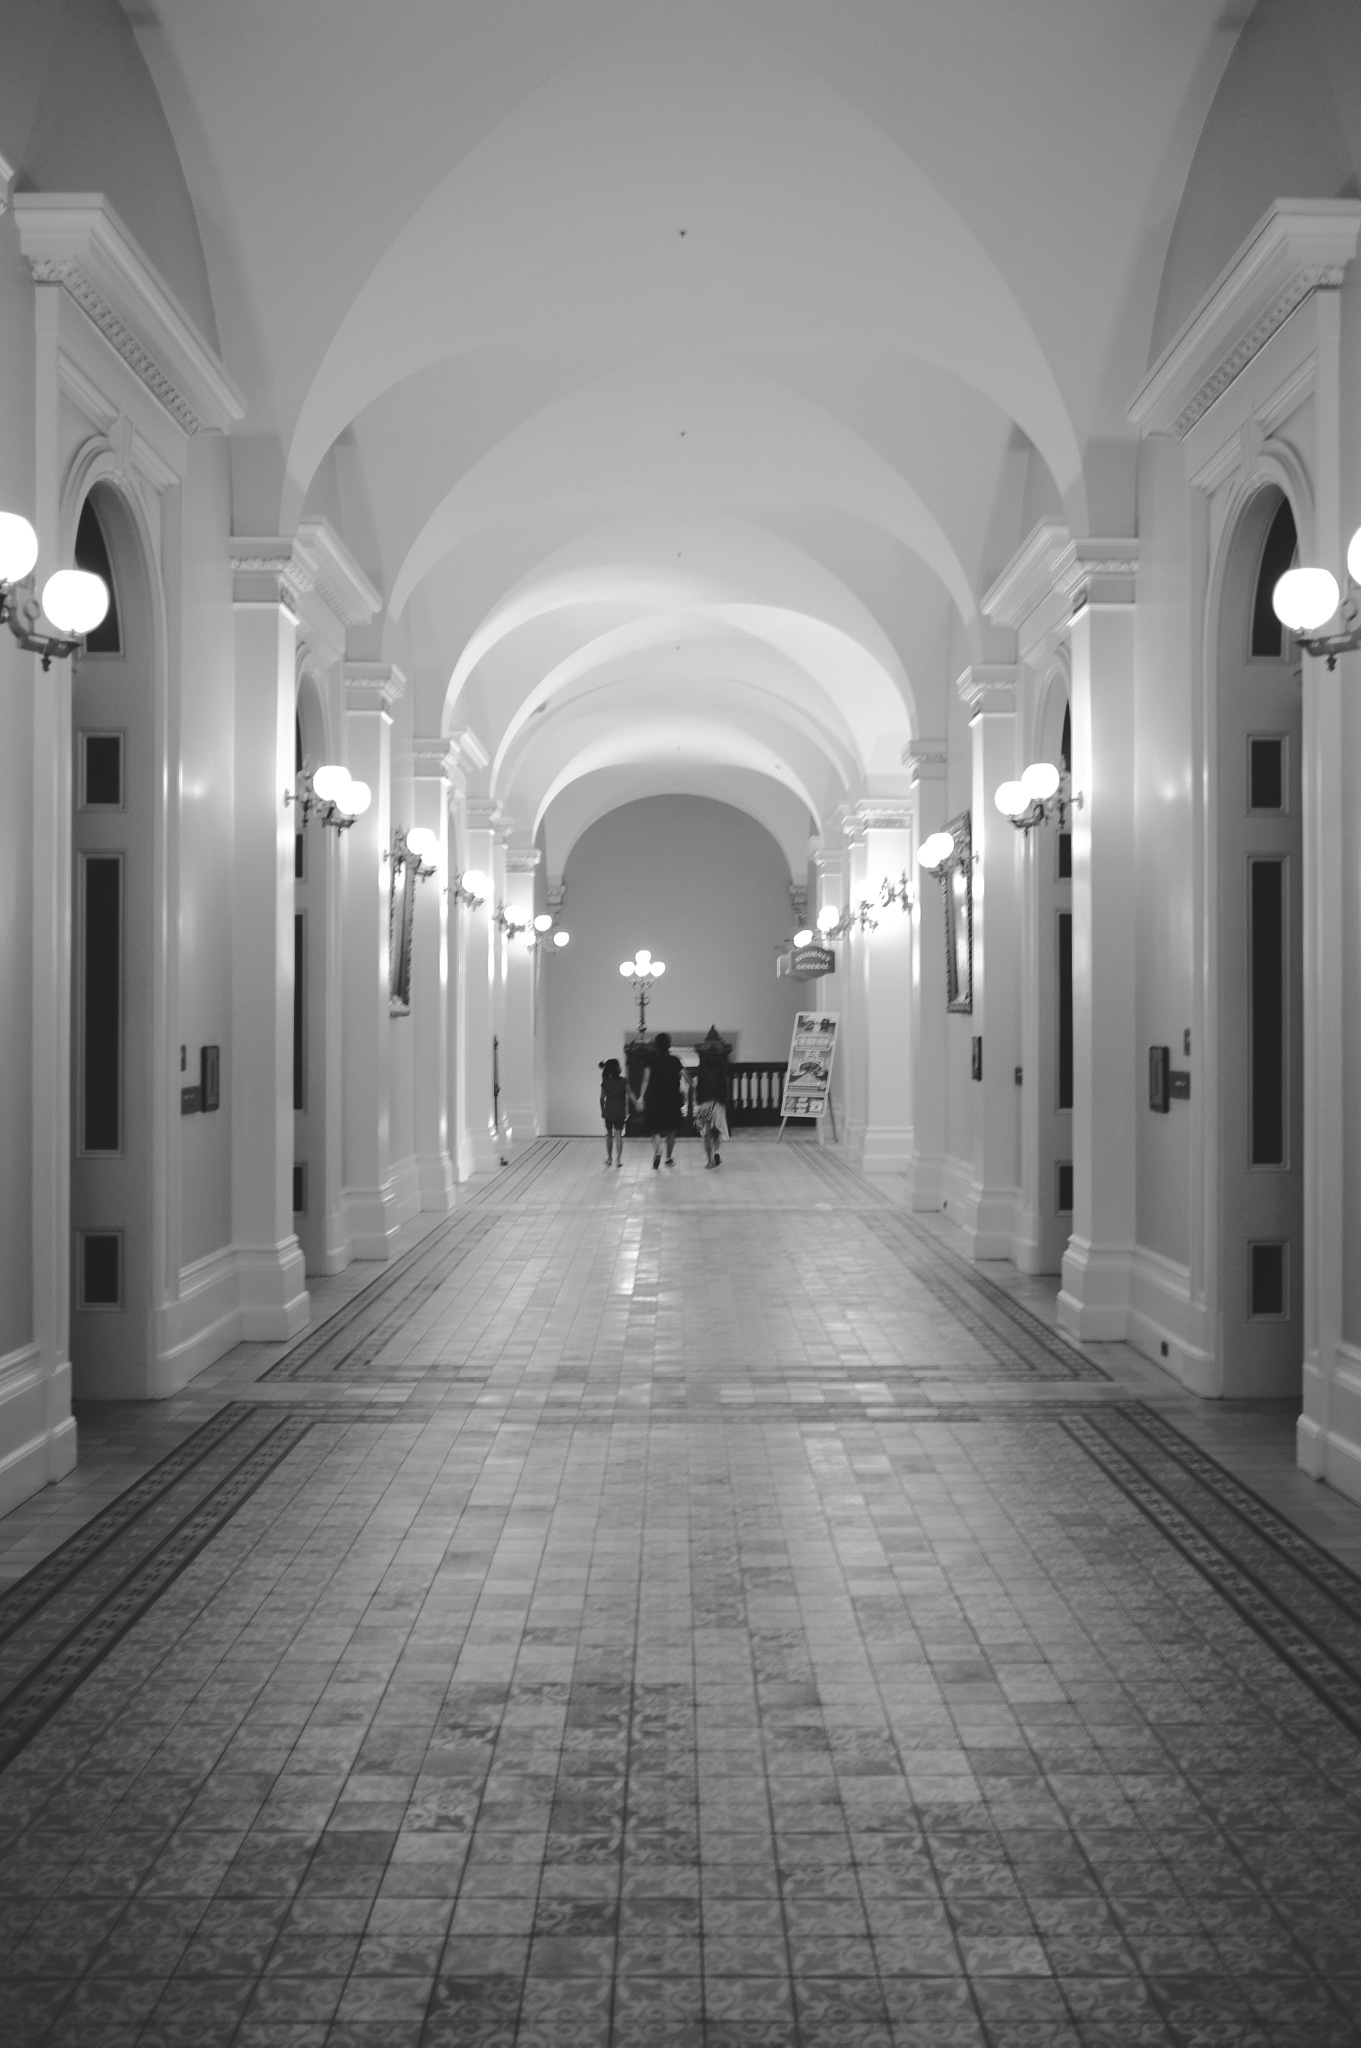 at California State Capitol by Edsel Clarin